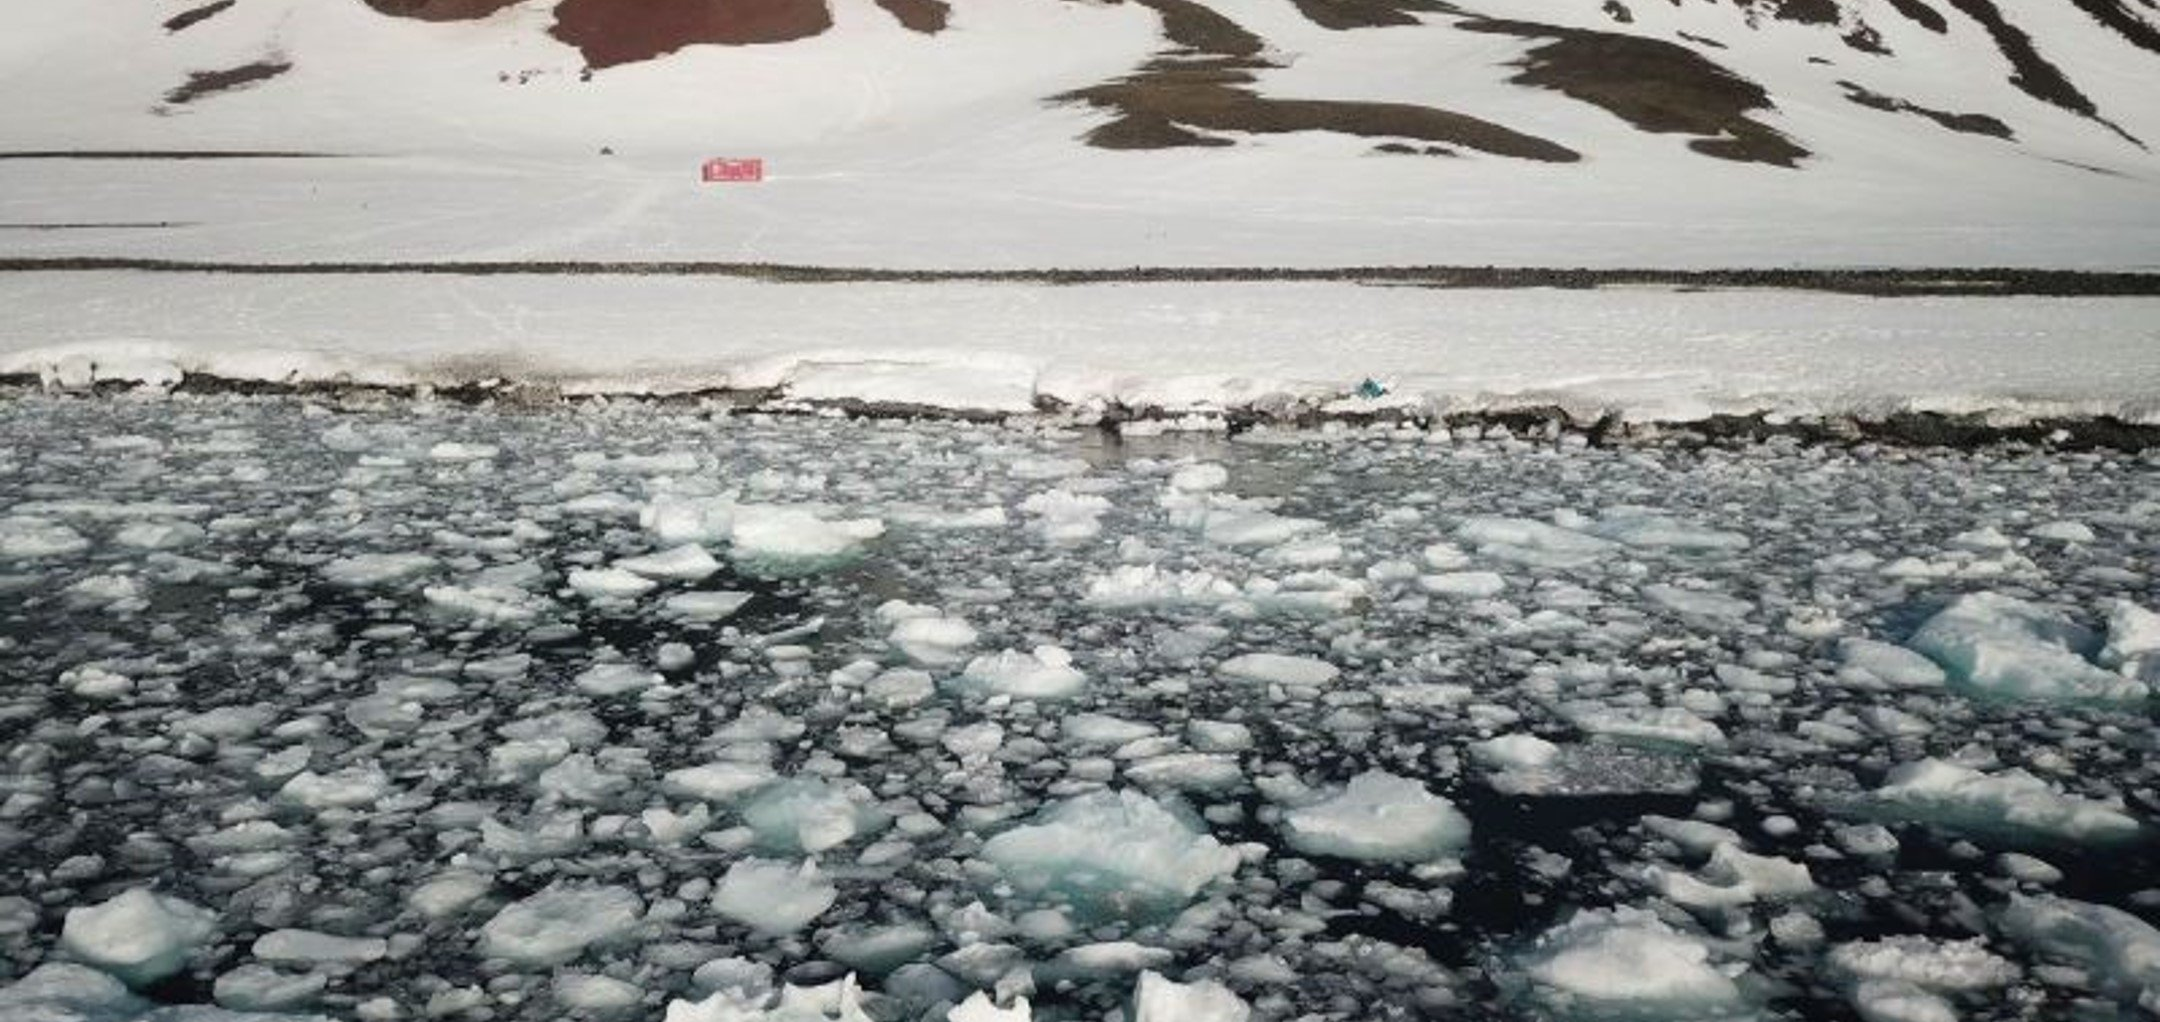 Still of ice floes from 'FREM' (2019)